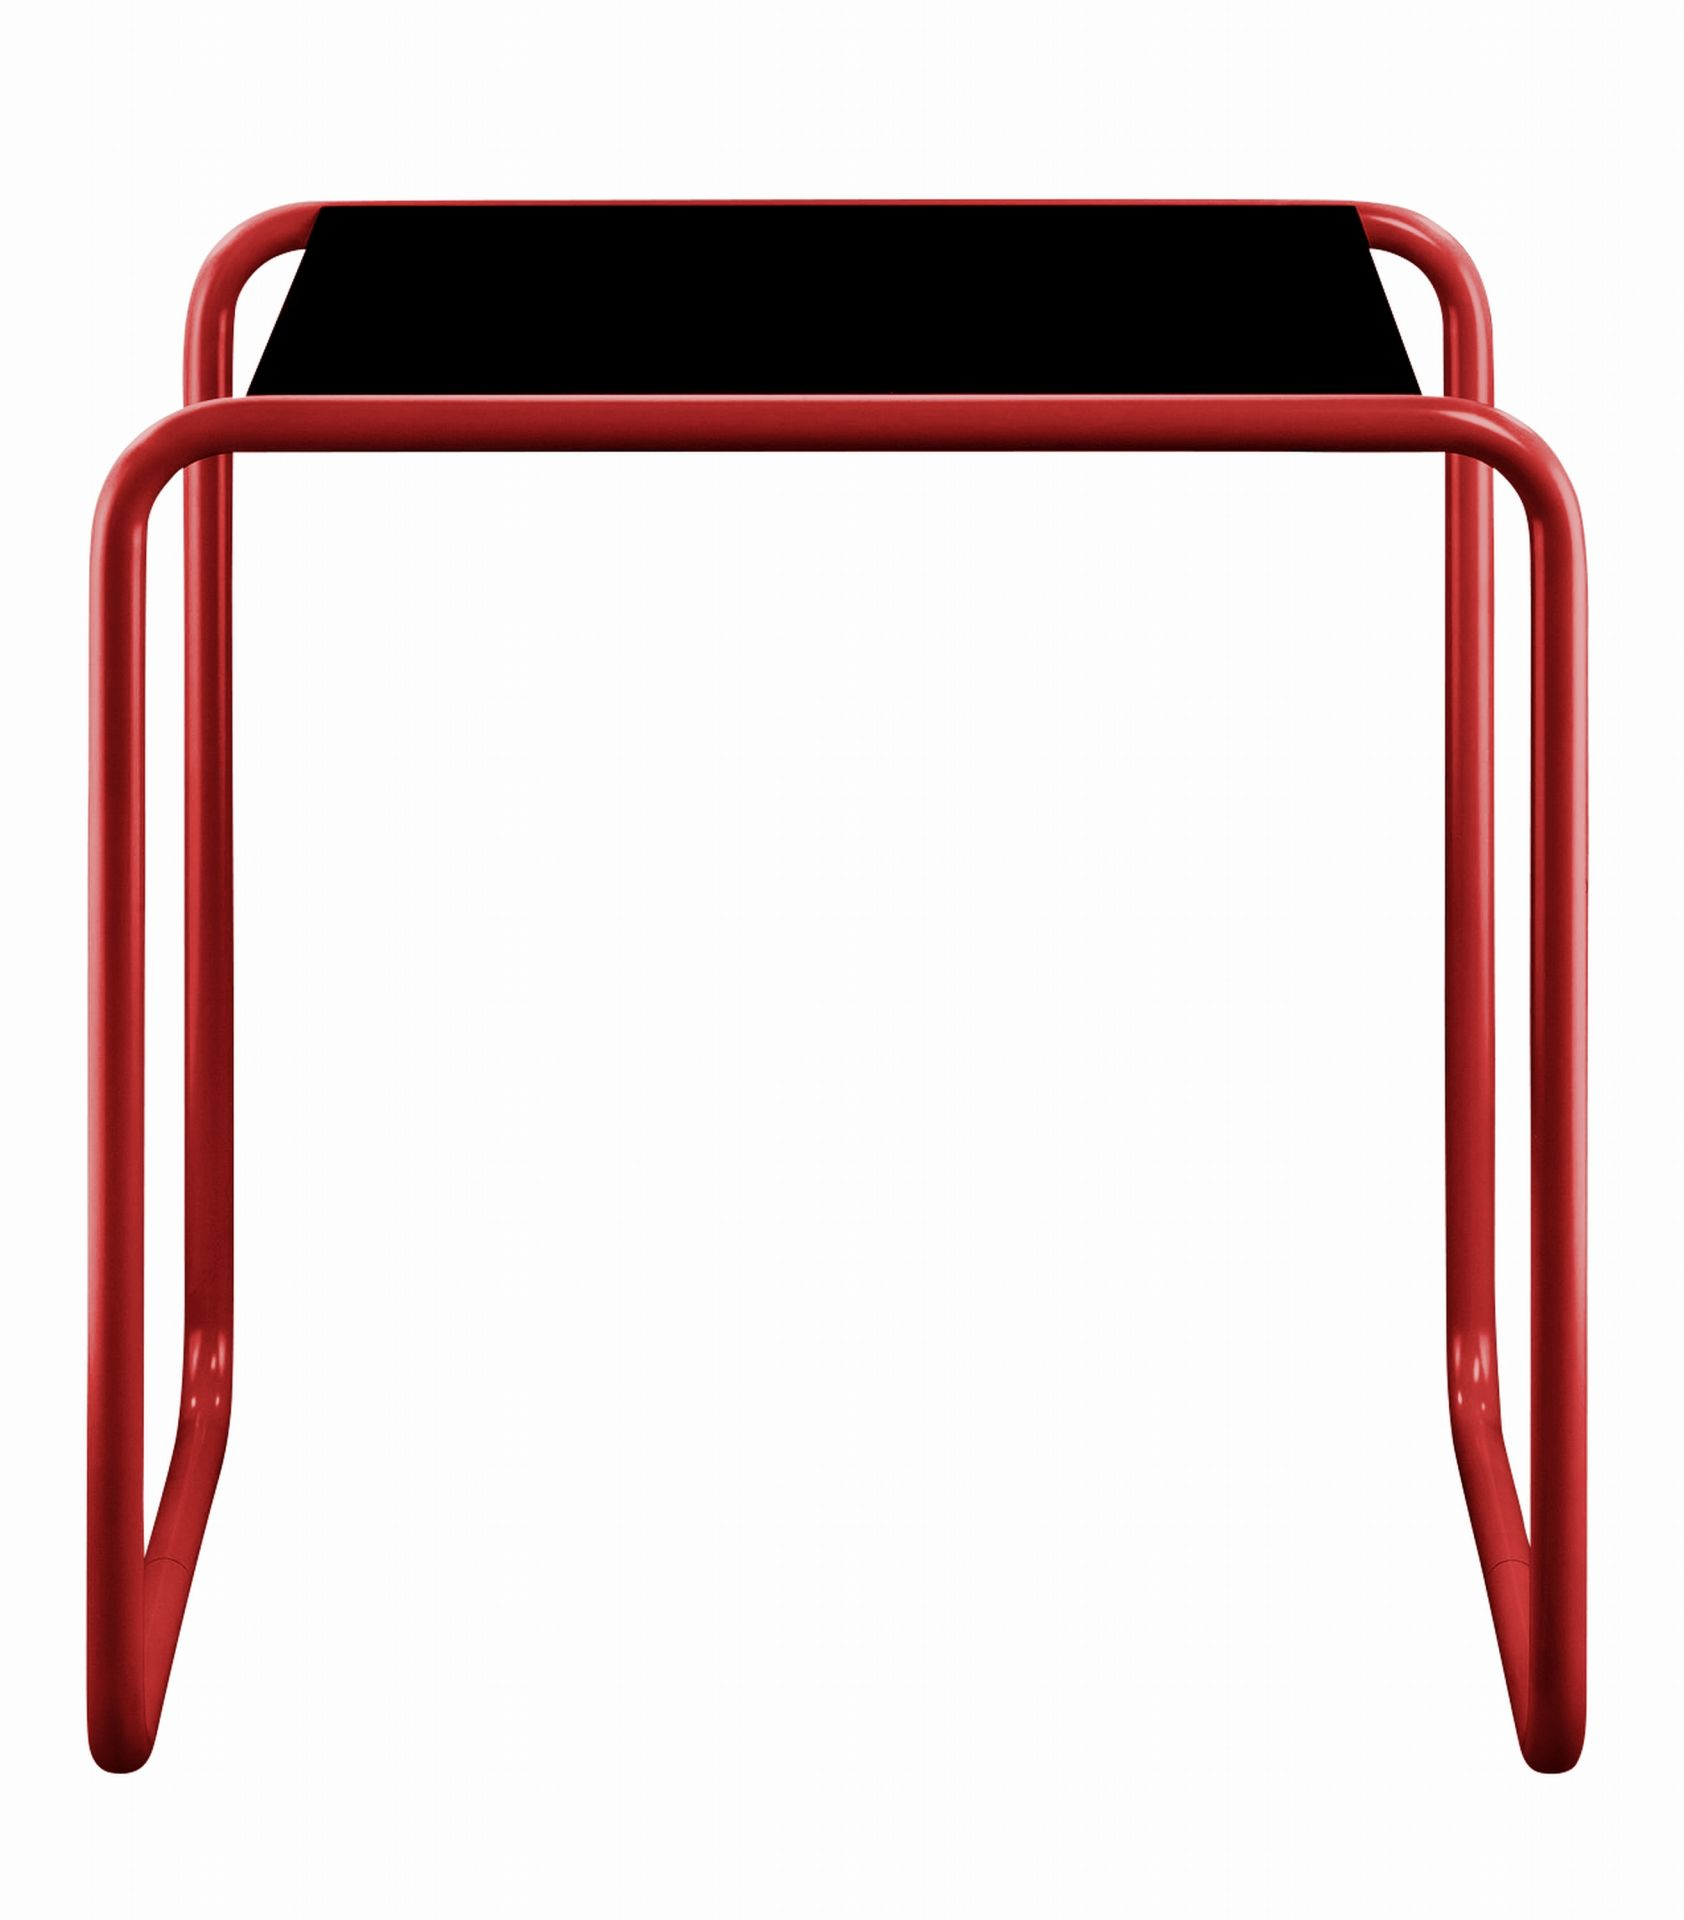 B 9 a side table Thonet QUICK SHIP